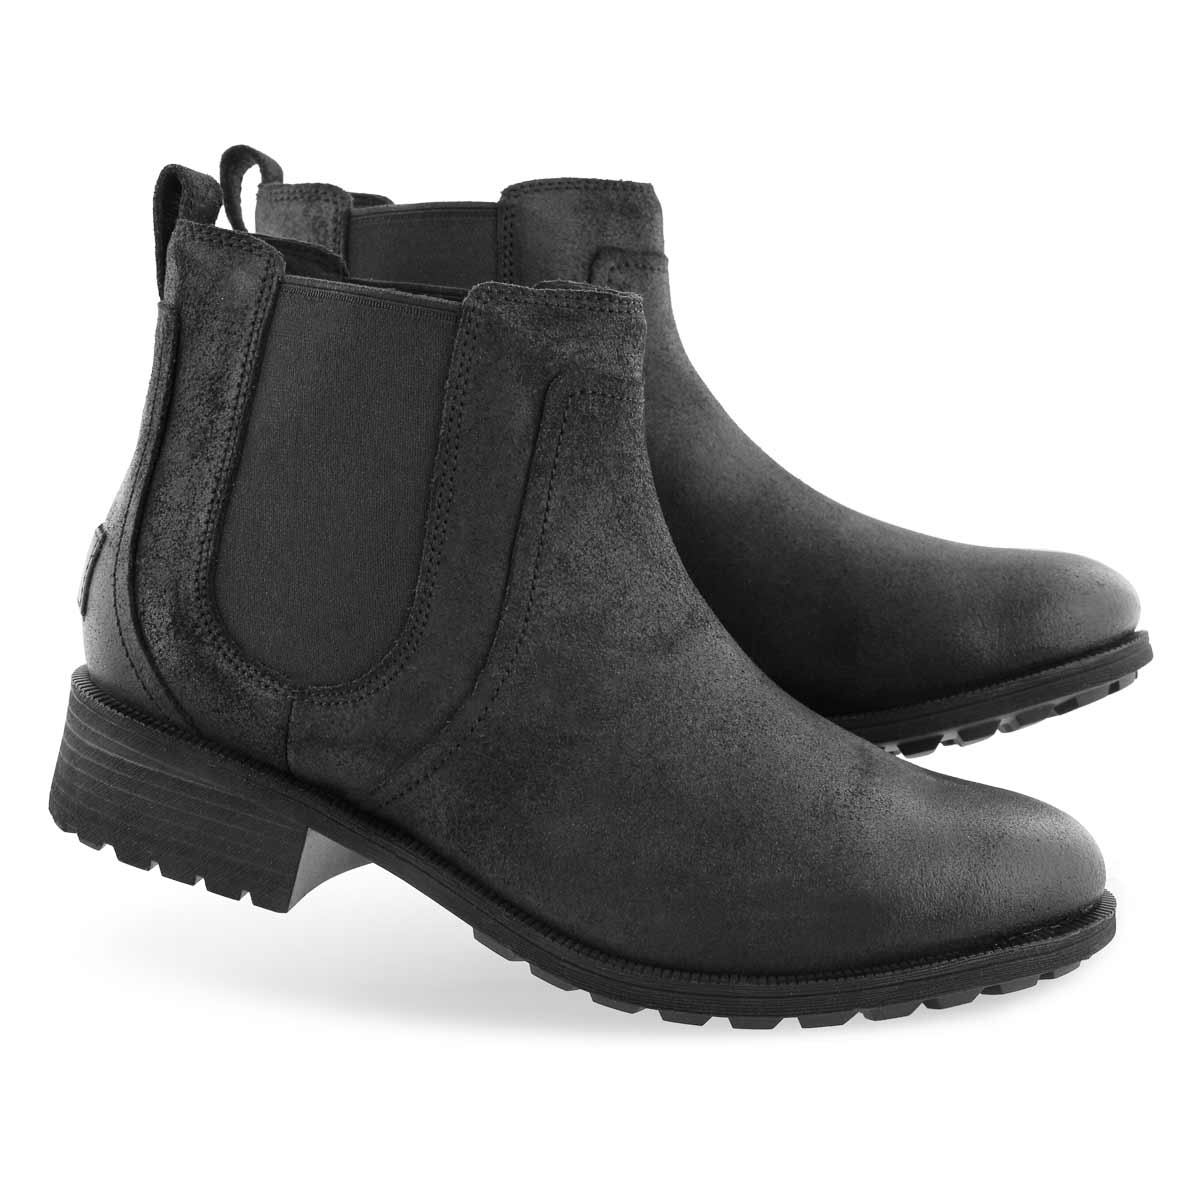 69c14dfc1 Women | Casual Boots | SoftMoc.com bard